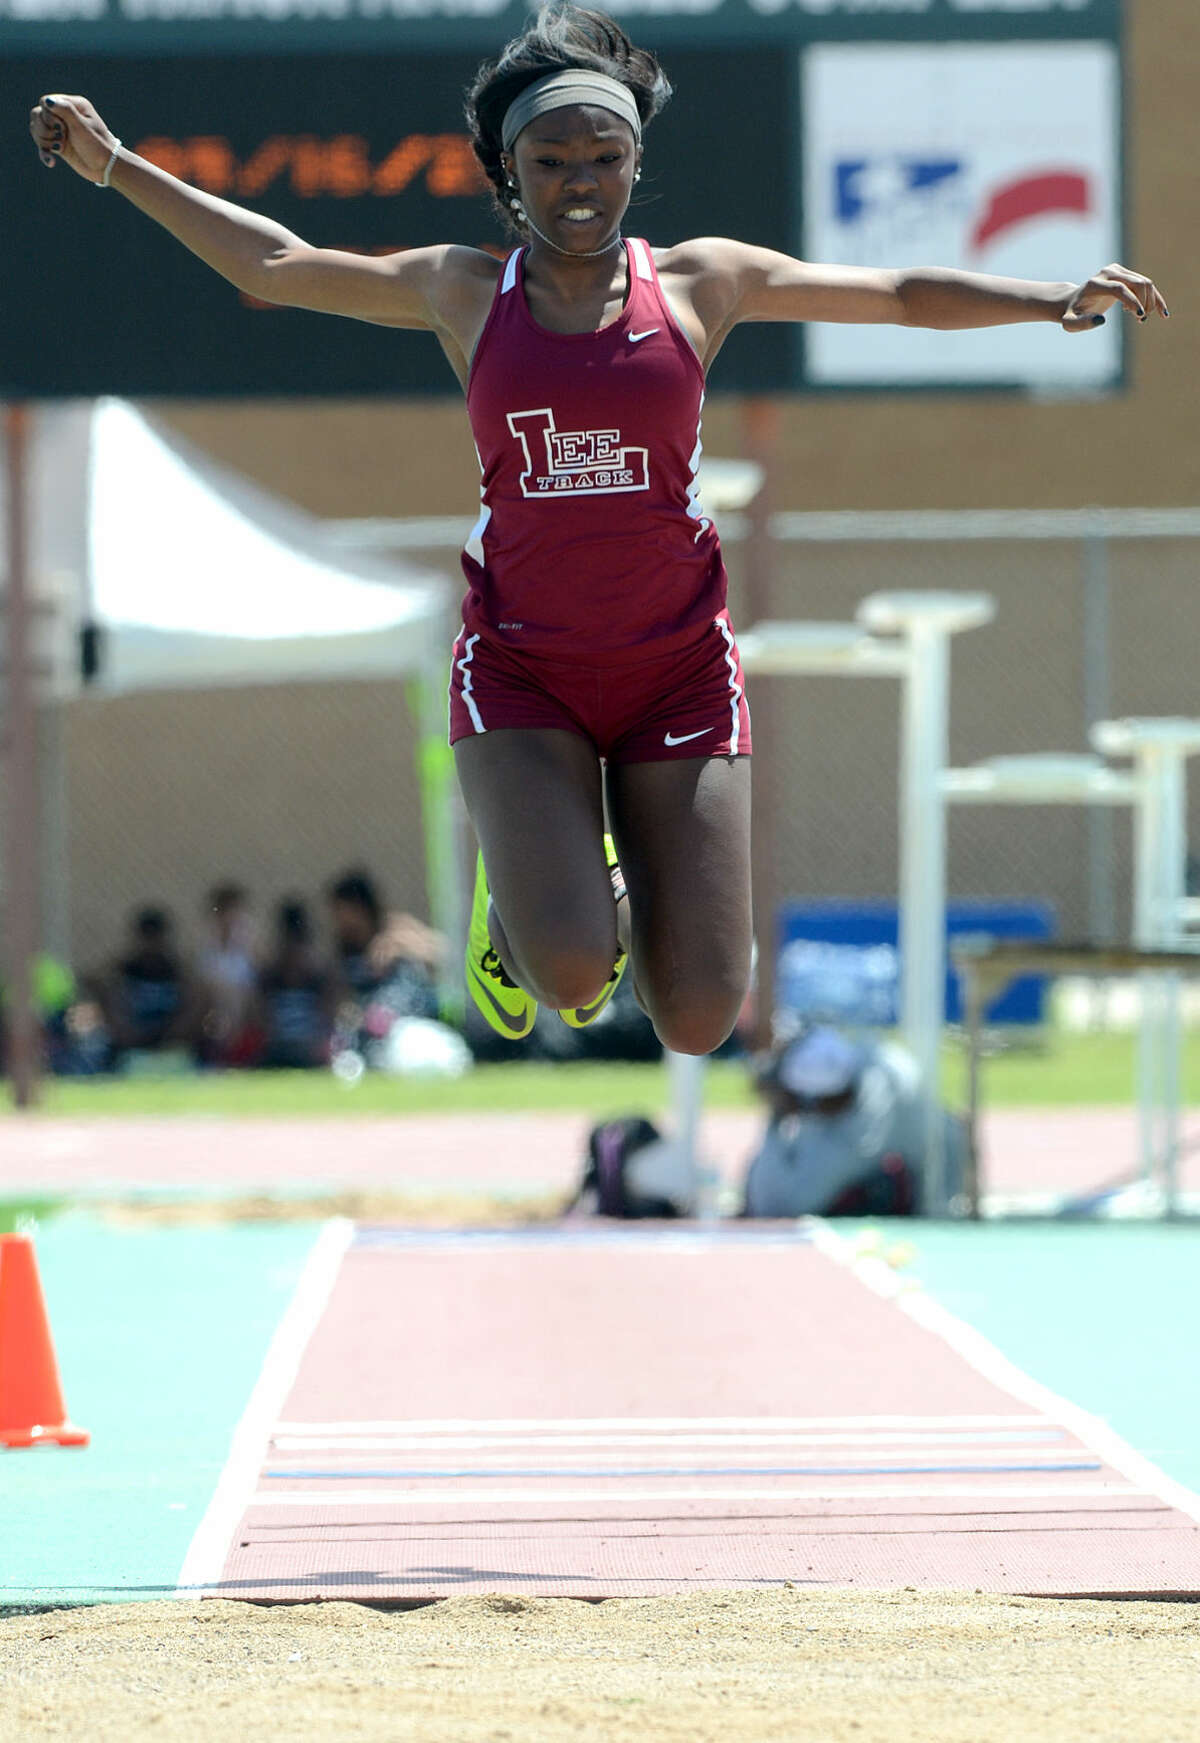 Bri'An Washington competes in the triple jump during the District 3-6A Track and Field Championships on Thursday, April 16, 2015, at Memorial Stadium James Durbin/Reporter-Telegram